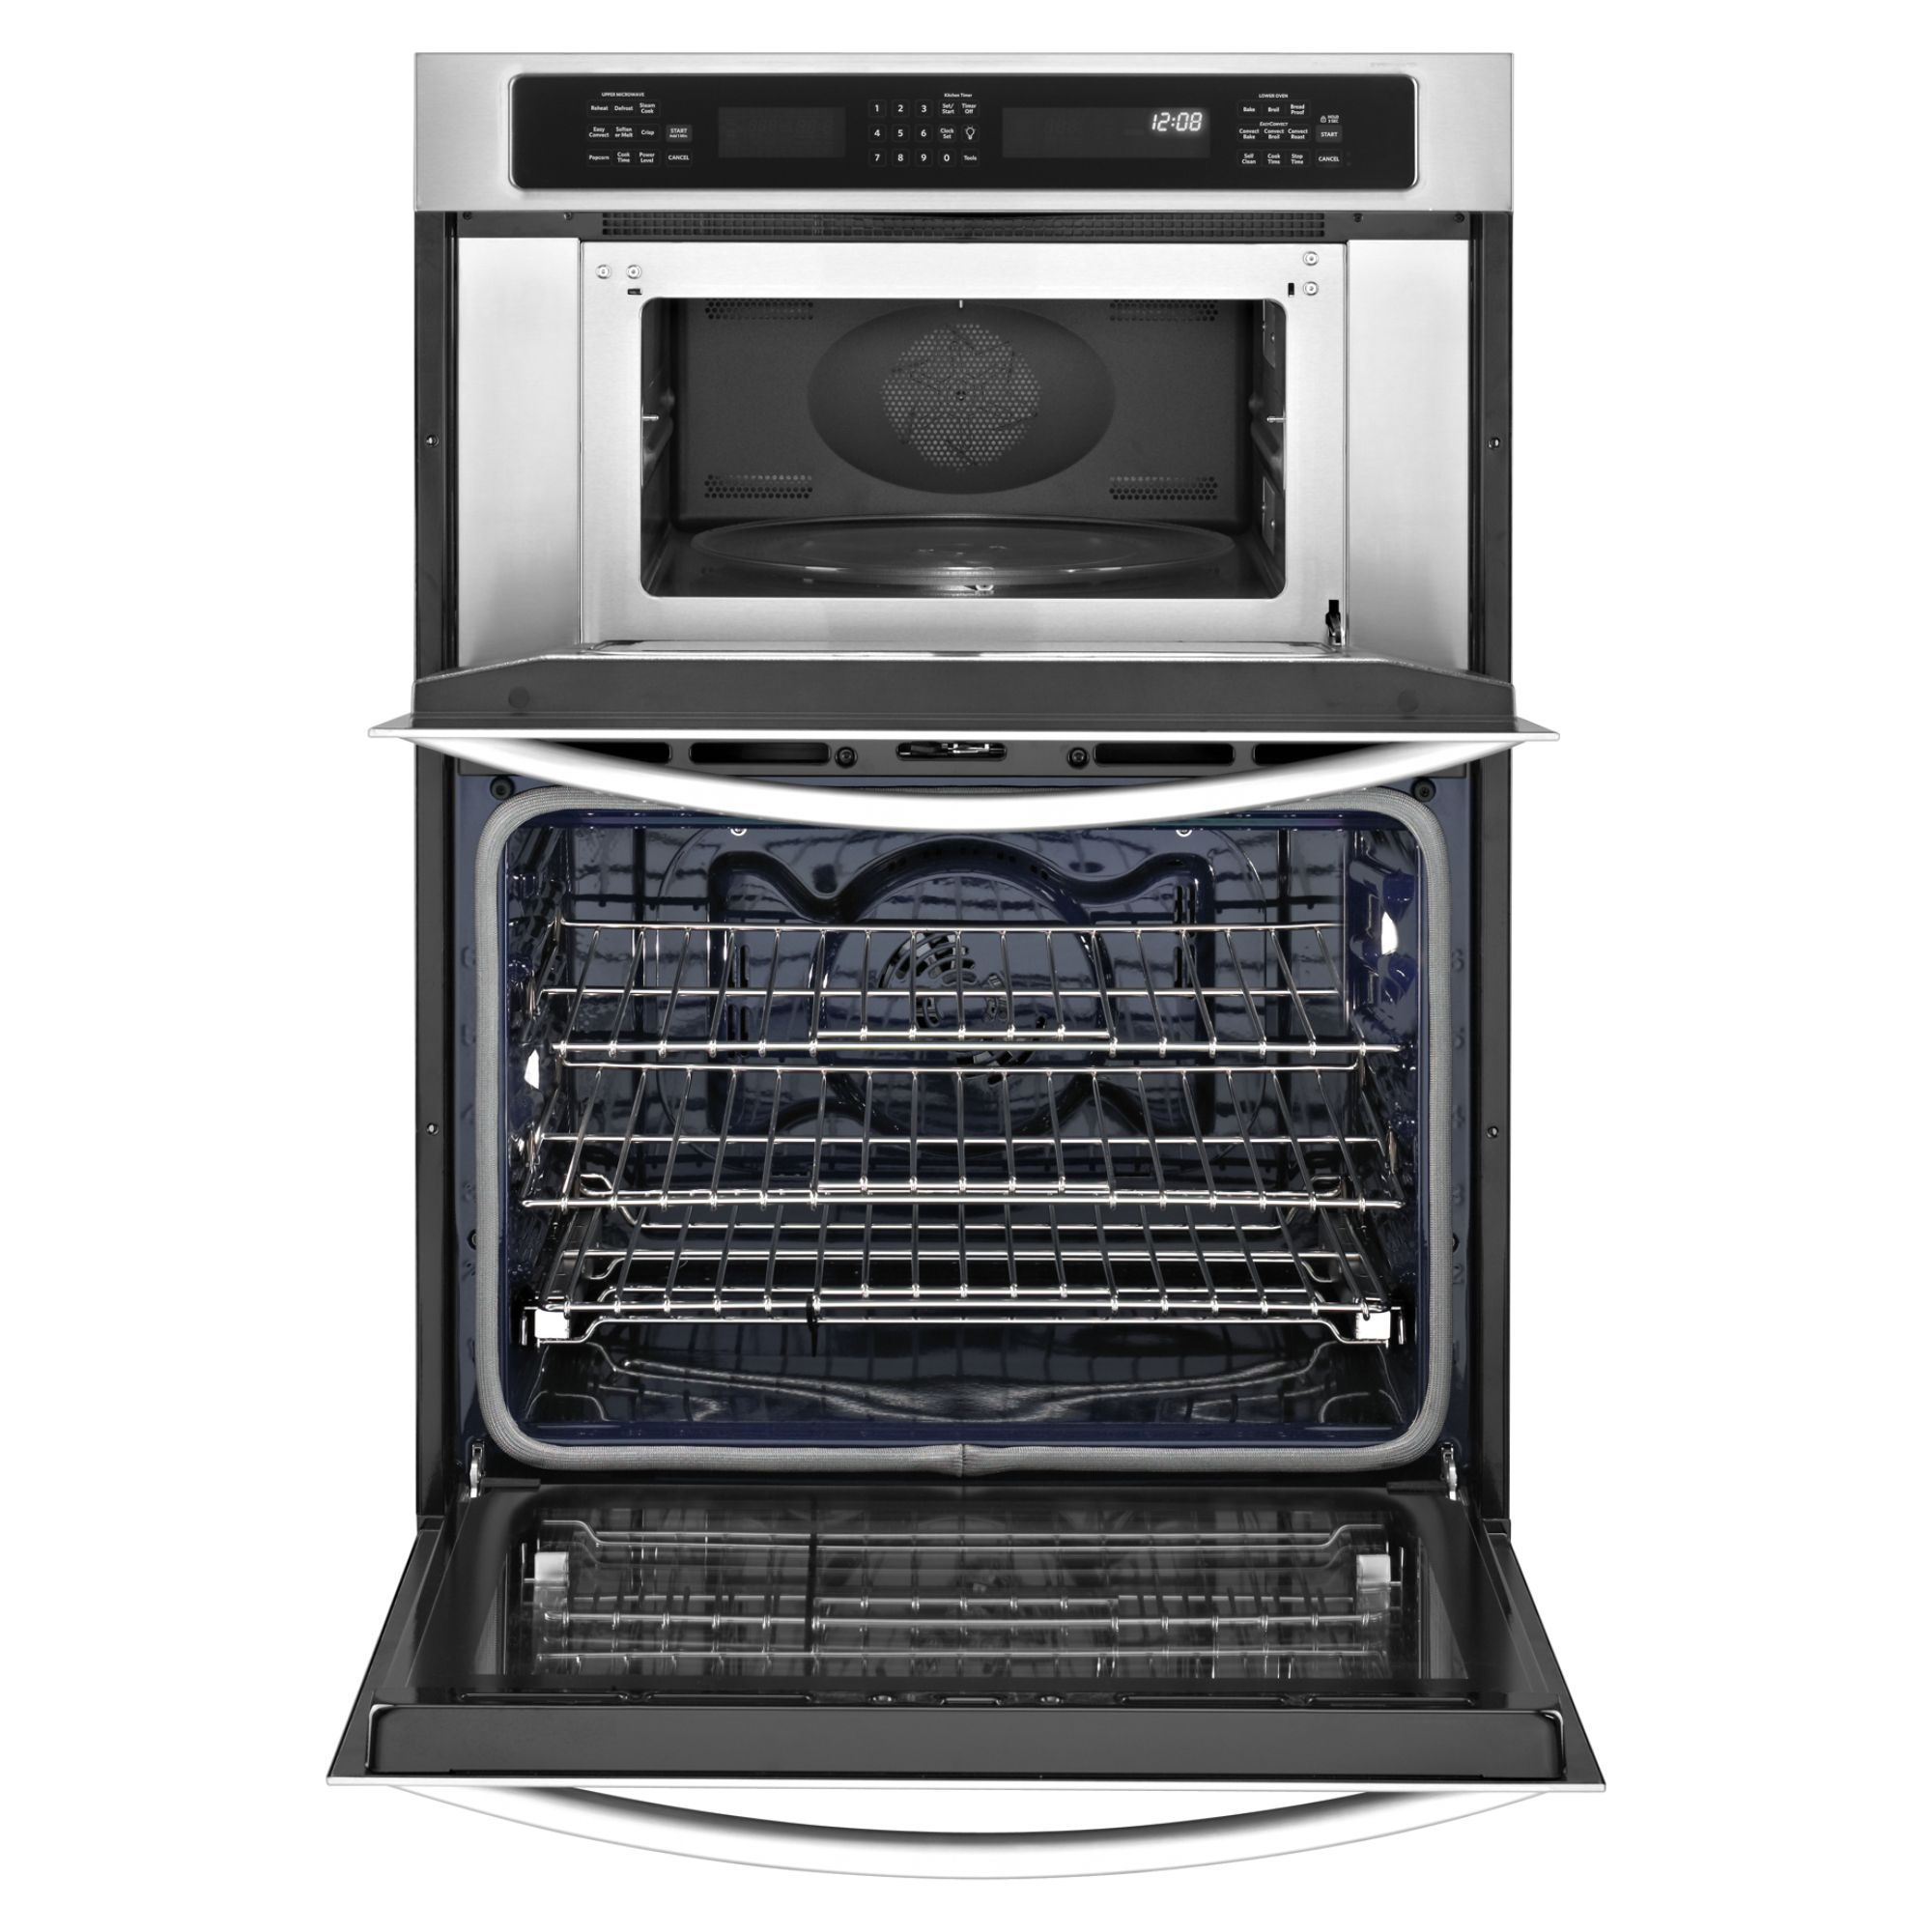 "KitchenAid 30"" Built-In Combination Wall Oven w/ True Convection - Stainless Steel"